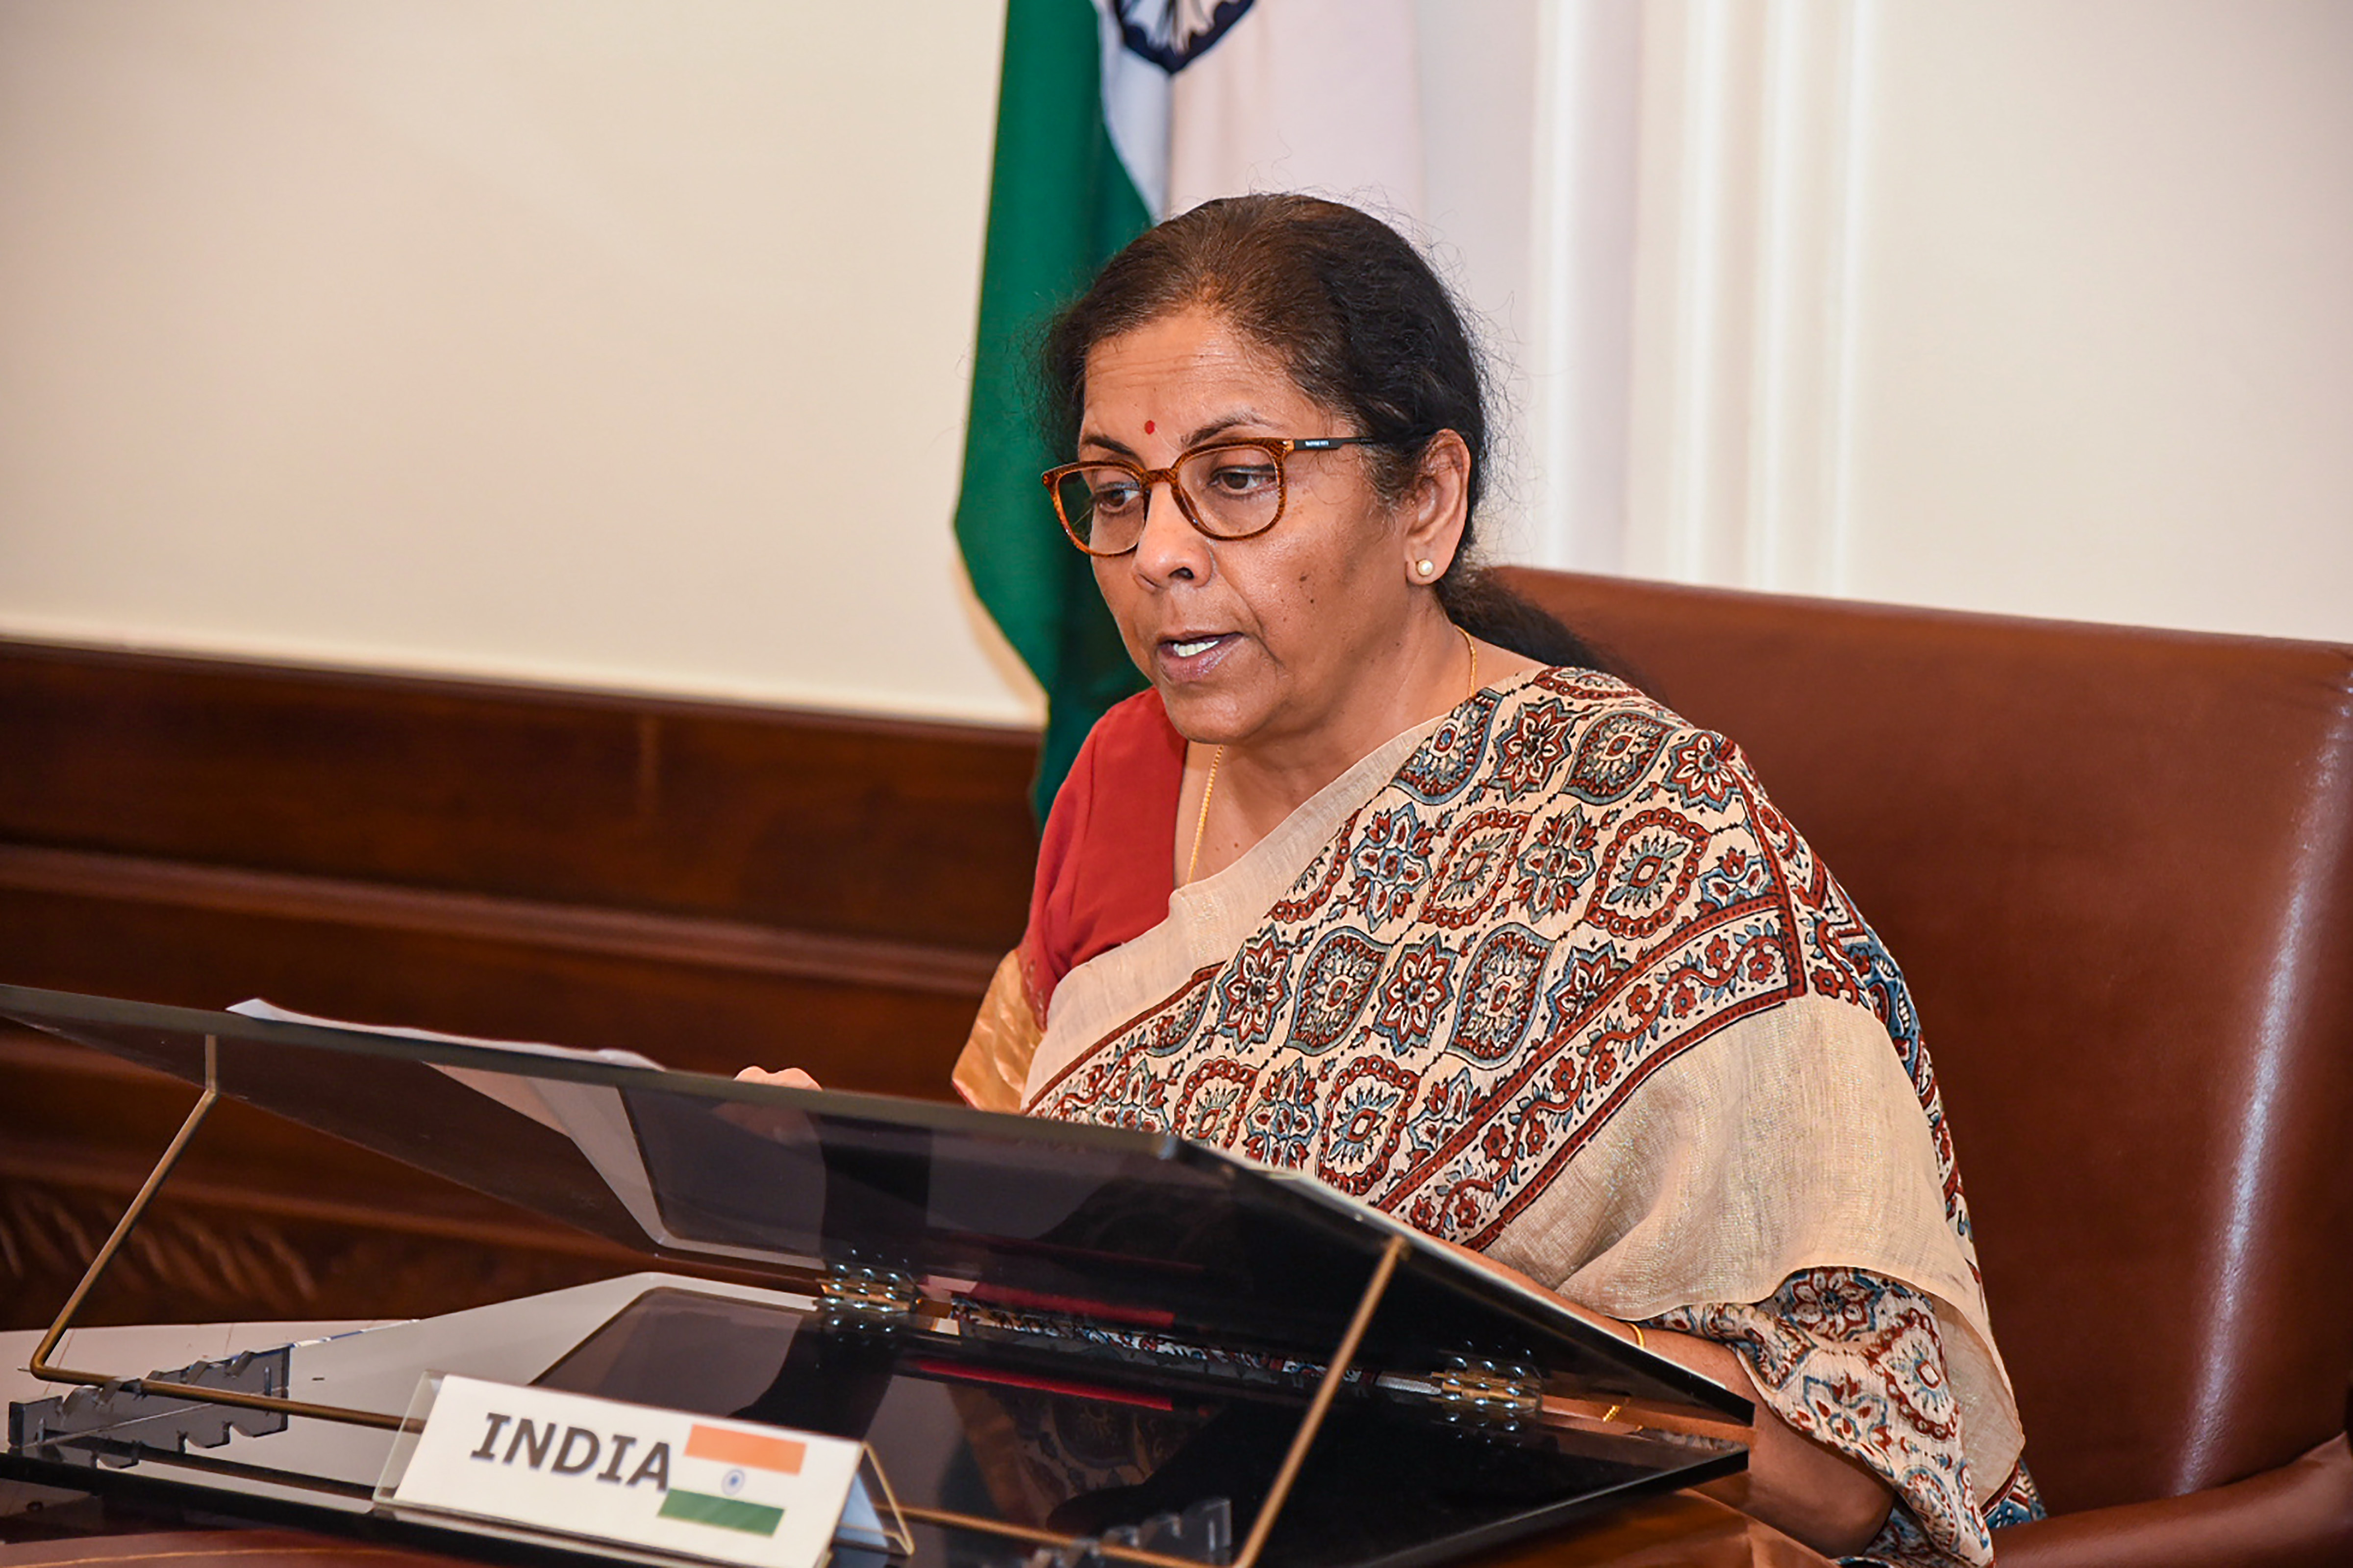 Finance Minister Nirmala Sitharaman during the 2nd meeting of G20 Finance Ministers, to discuss global economic outlook amid evolving COVID-19 pandemic, in New Delhi, Wednesday, April 15, 2020.